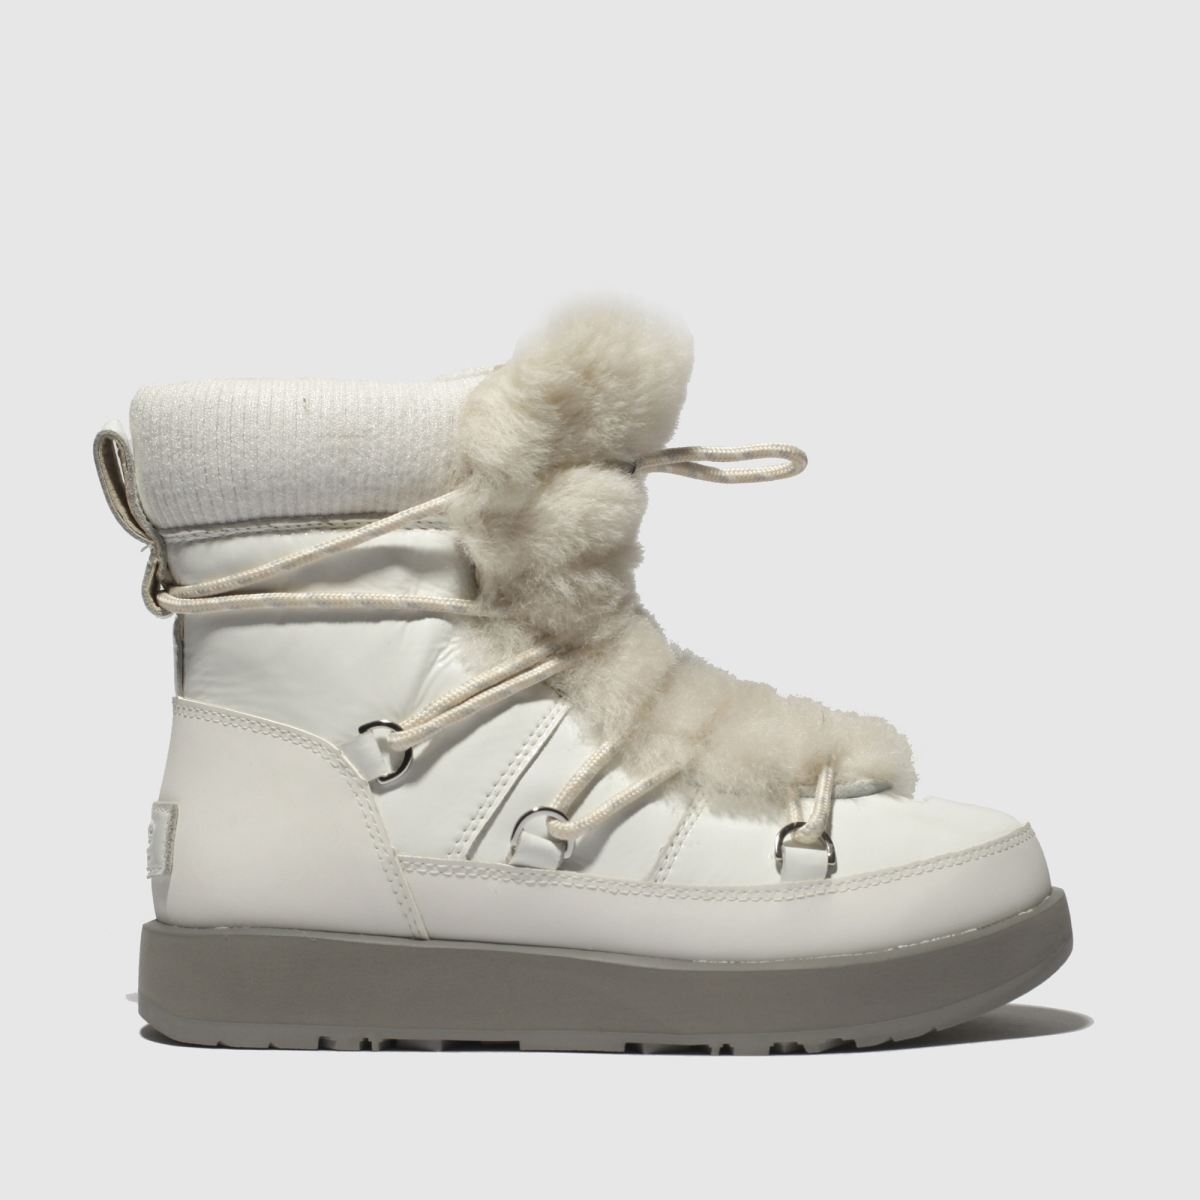 Ugg White Highland Waterproof Boots